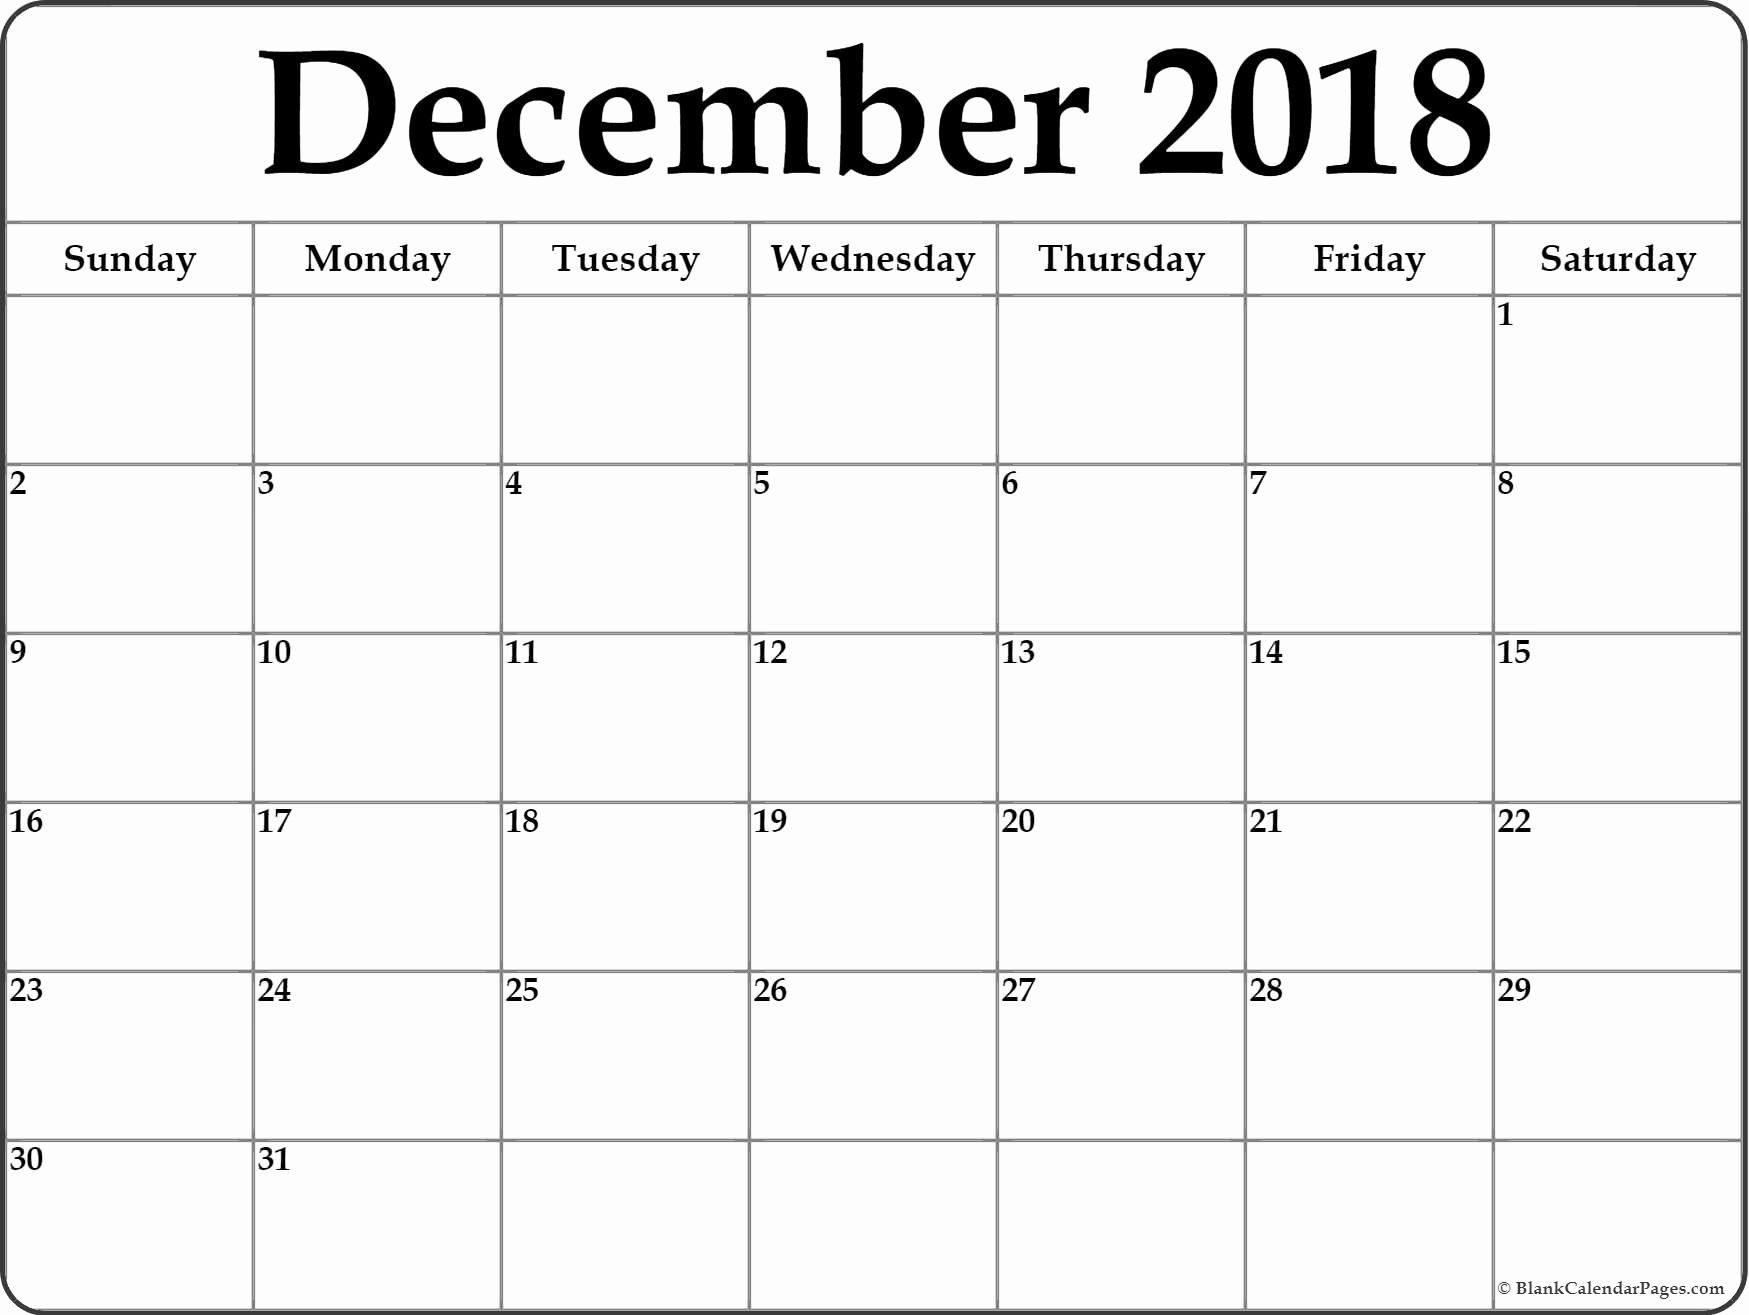 Calendar December 2018 And January 2019 | December 2018 Calendar inside Blank Printable Calendar December